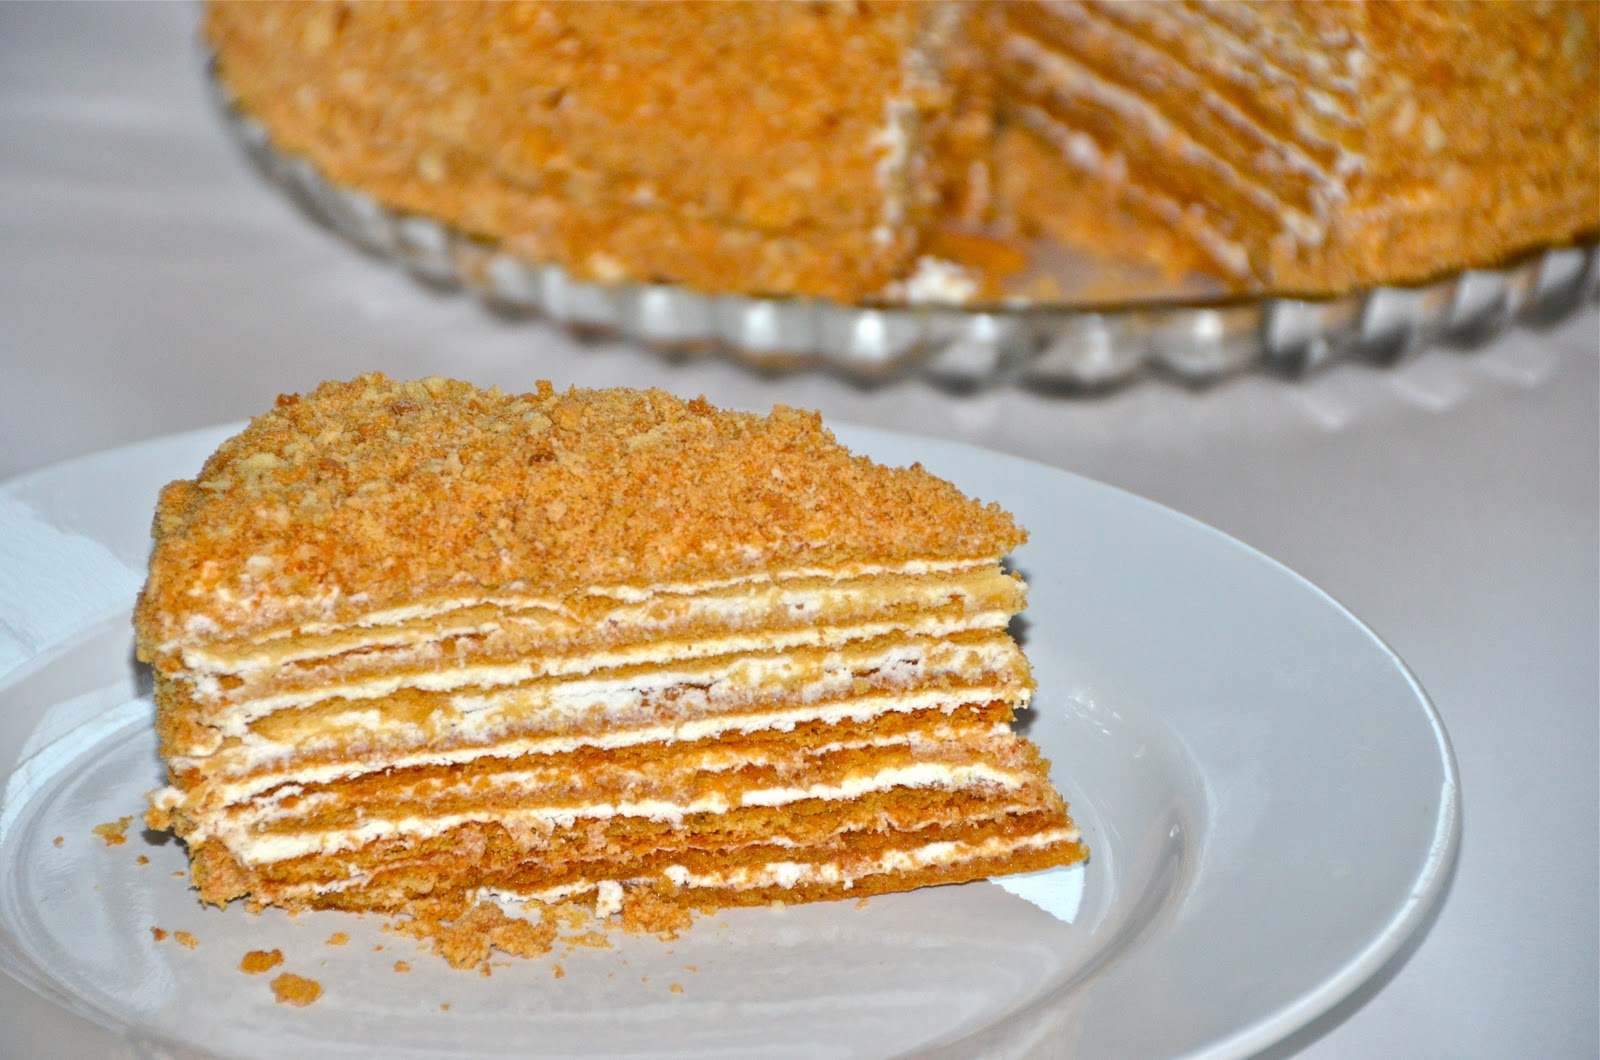 Russian Sour Cream Cake